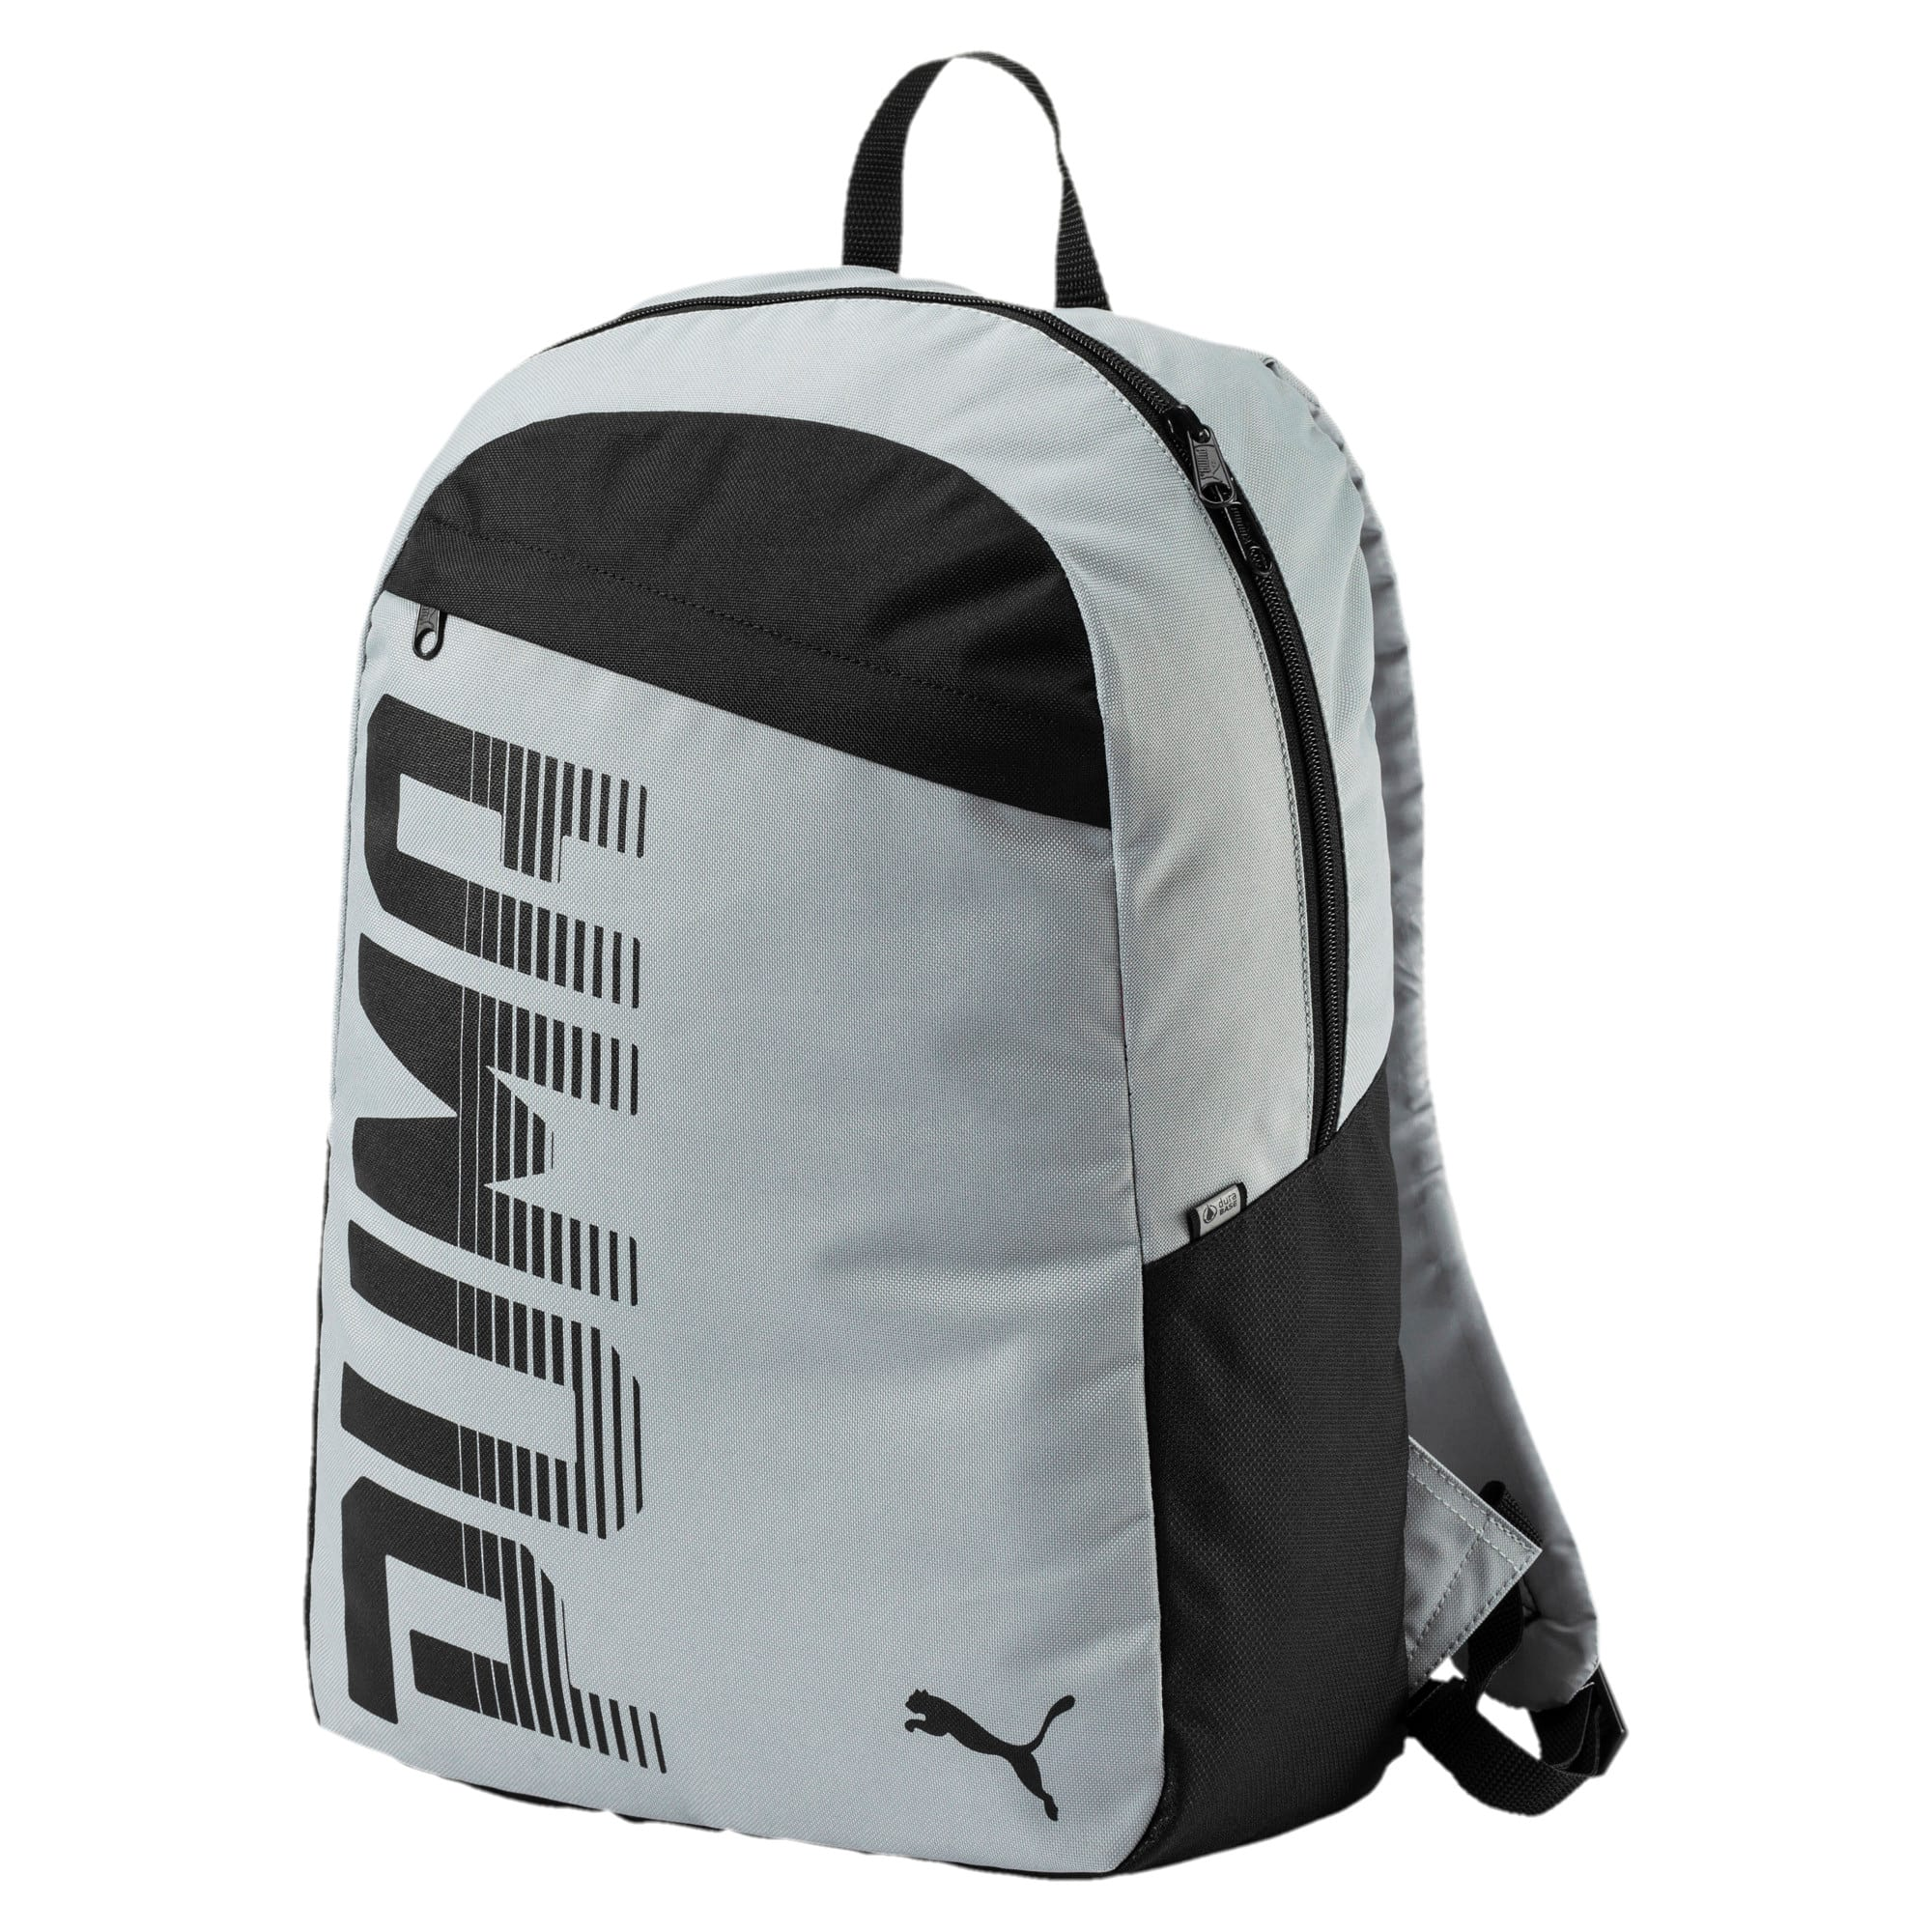 Thumbnail 1 of Pioneer Backpack I, Quarry, medium-IND